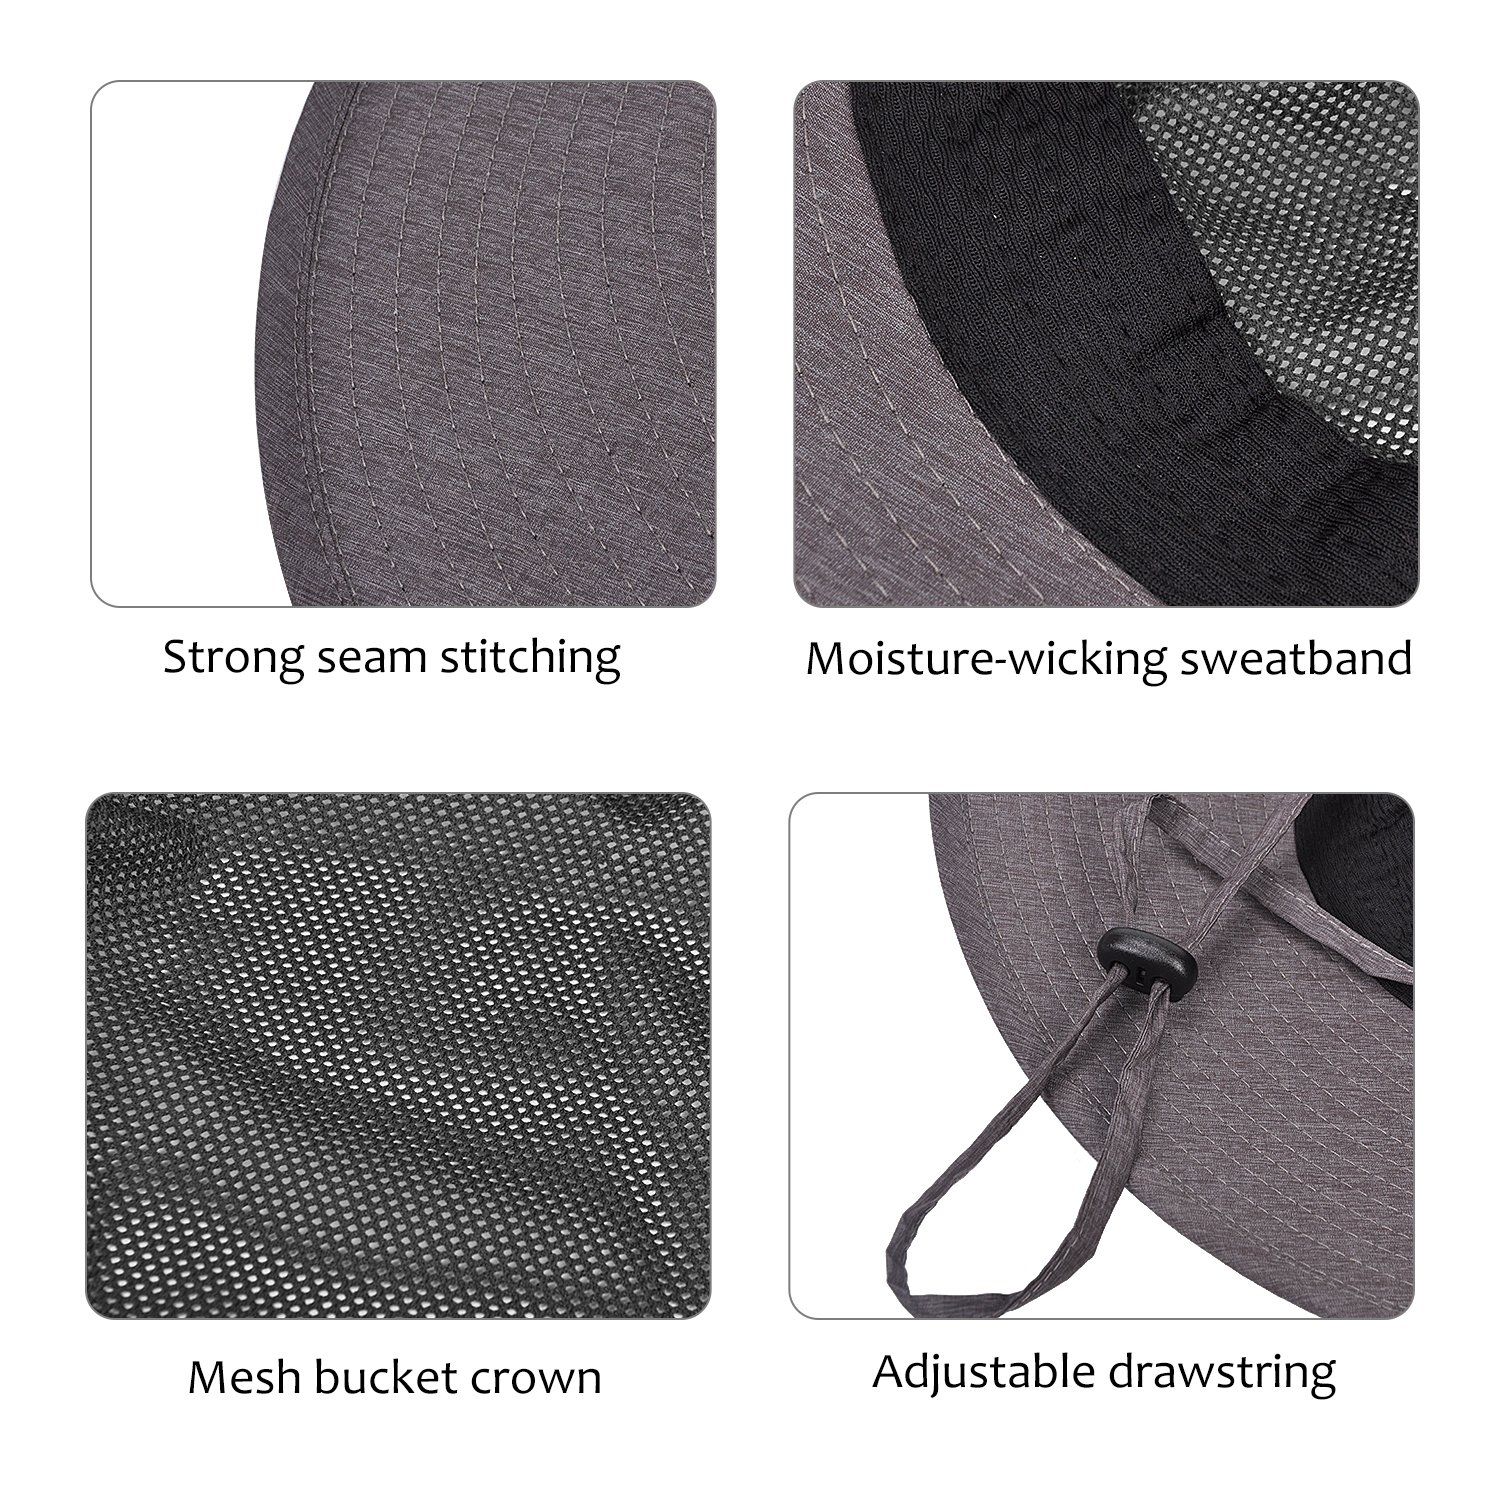 e760cb78ecc Amazon.com   Mens Wide Brim Sun Hat Safari Boonie Fishing Hat with Adjustable  Drawstring and Removable Bucket Crown for Outdoor Camping Hiking Hunting ...